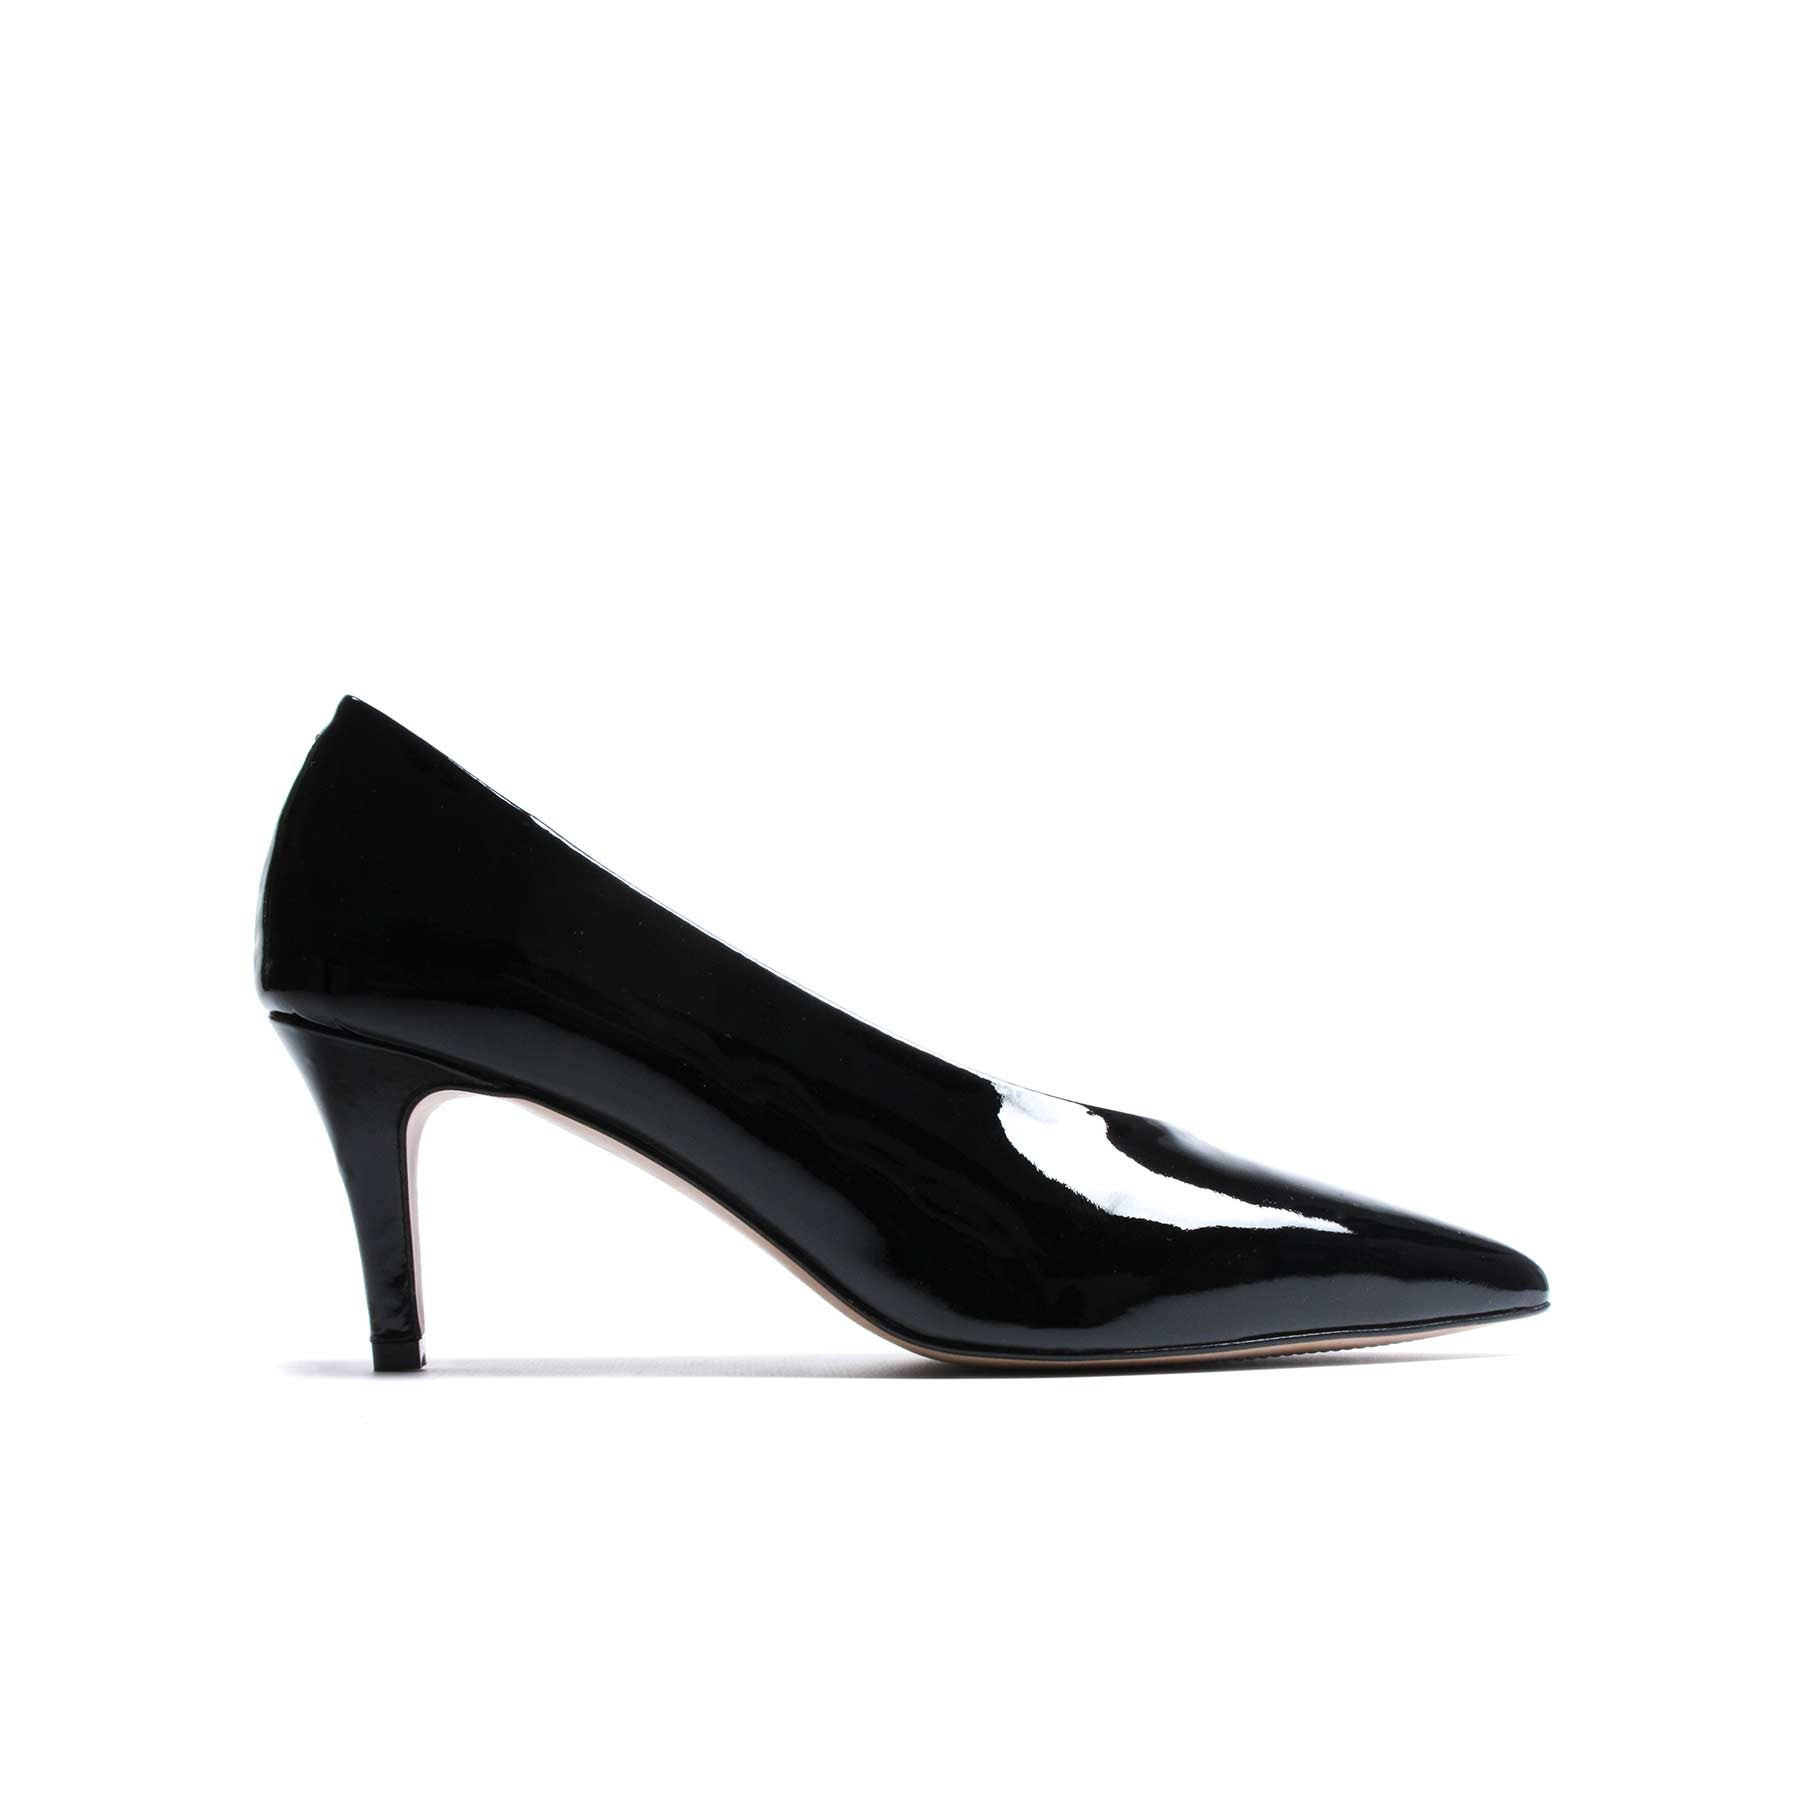 Melody Black Patent Leather